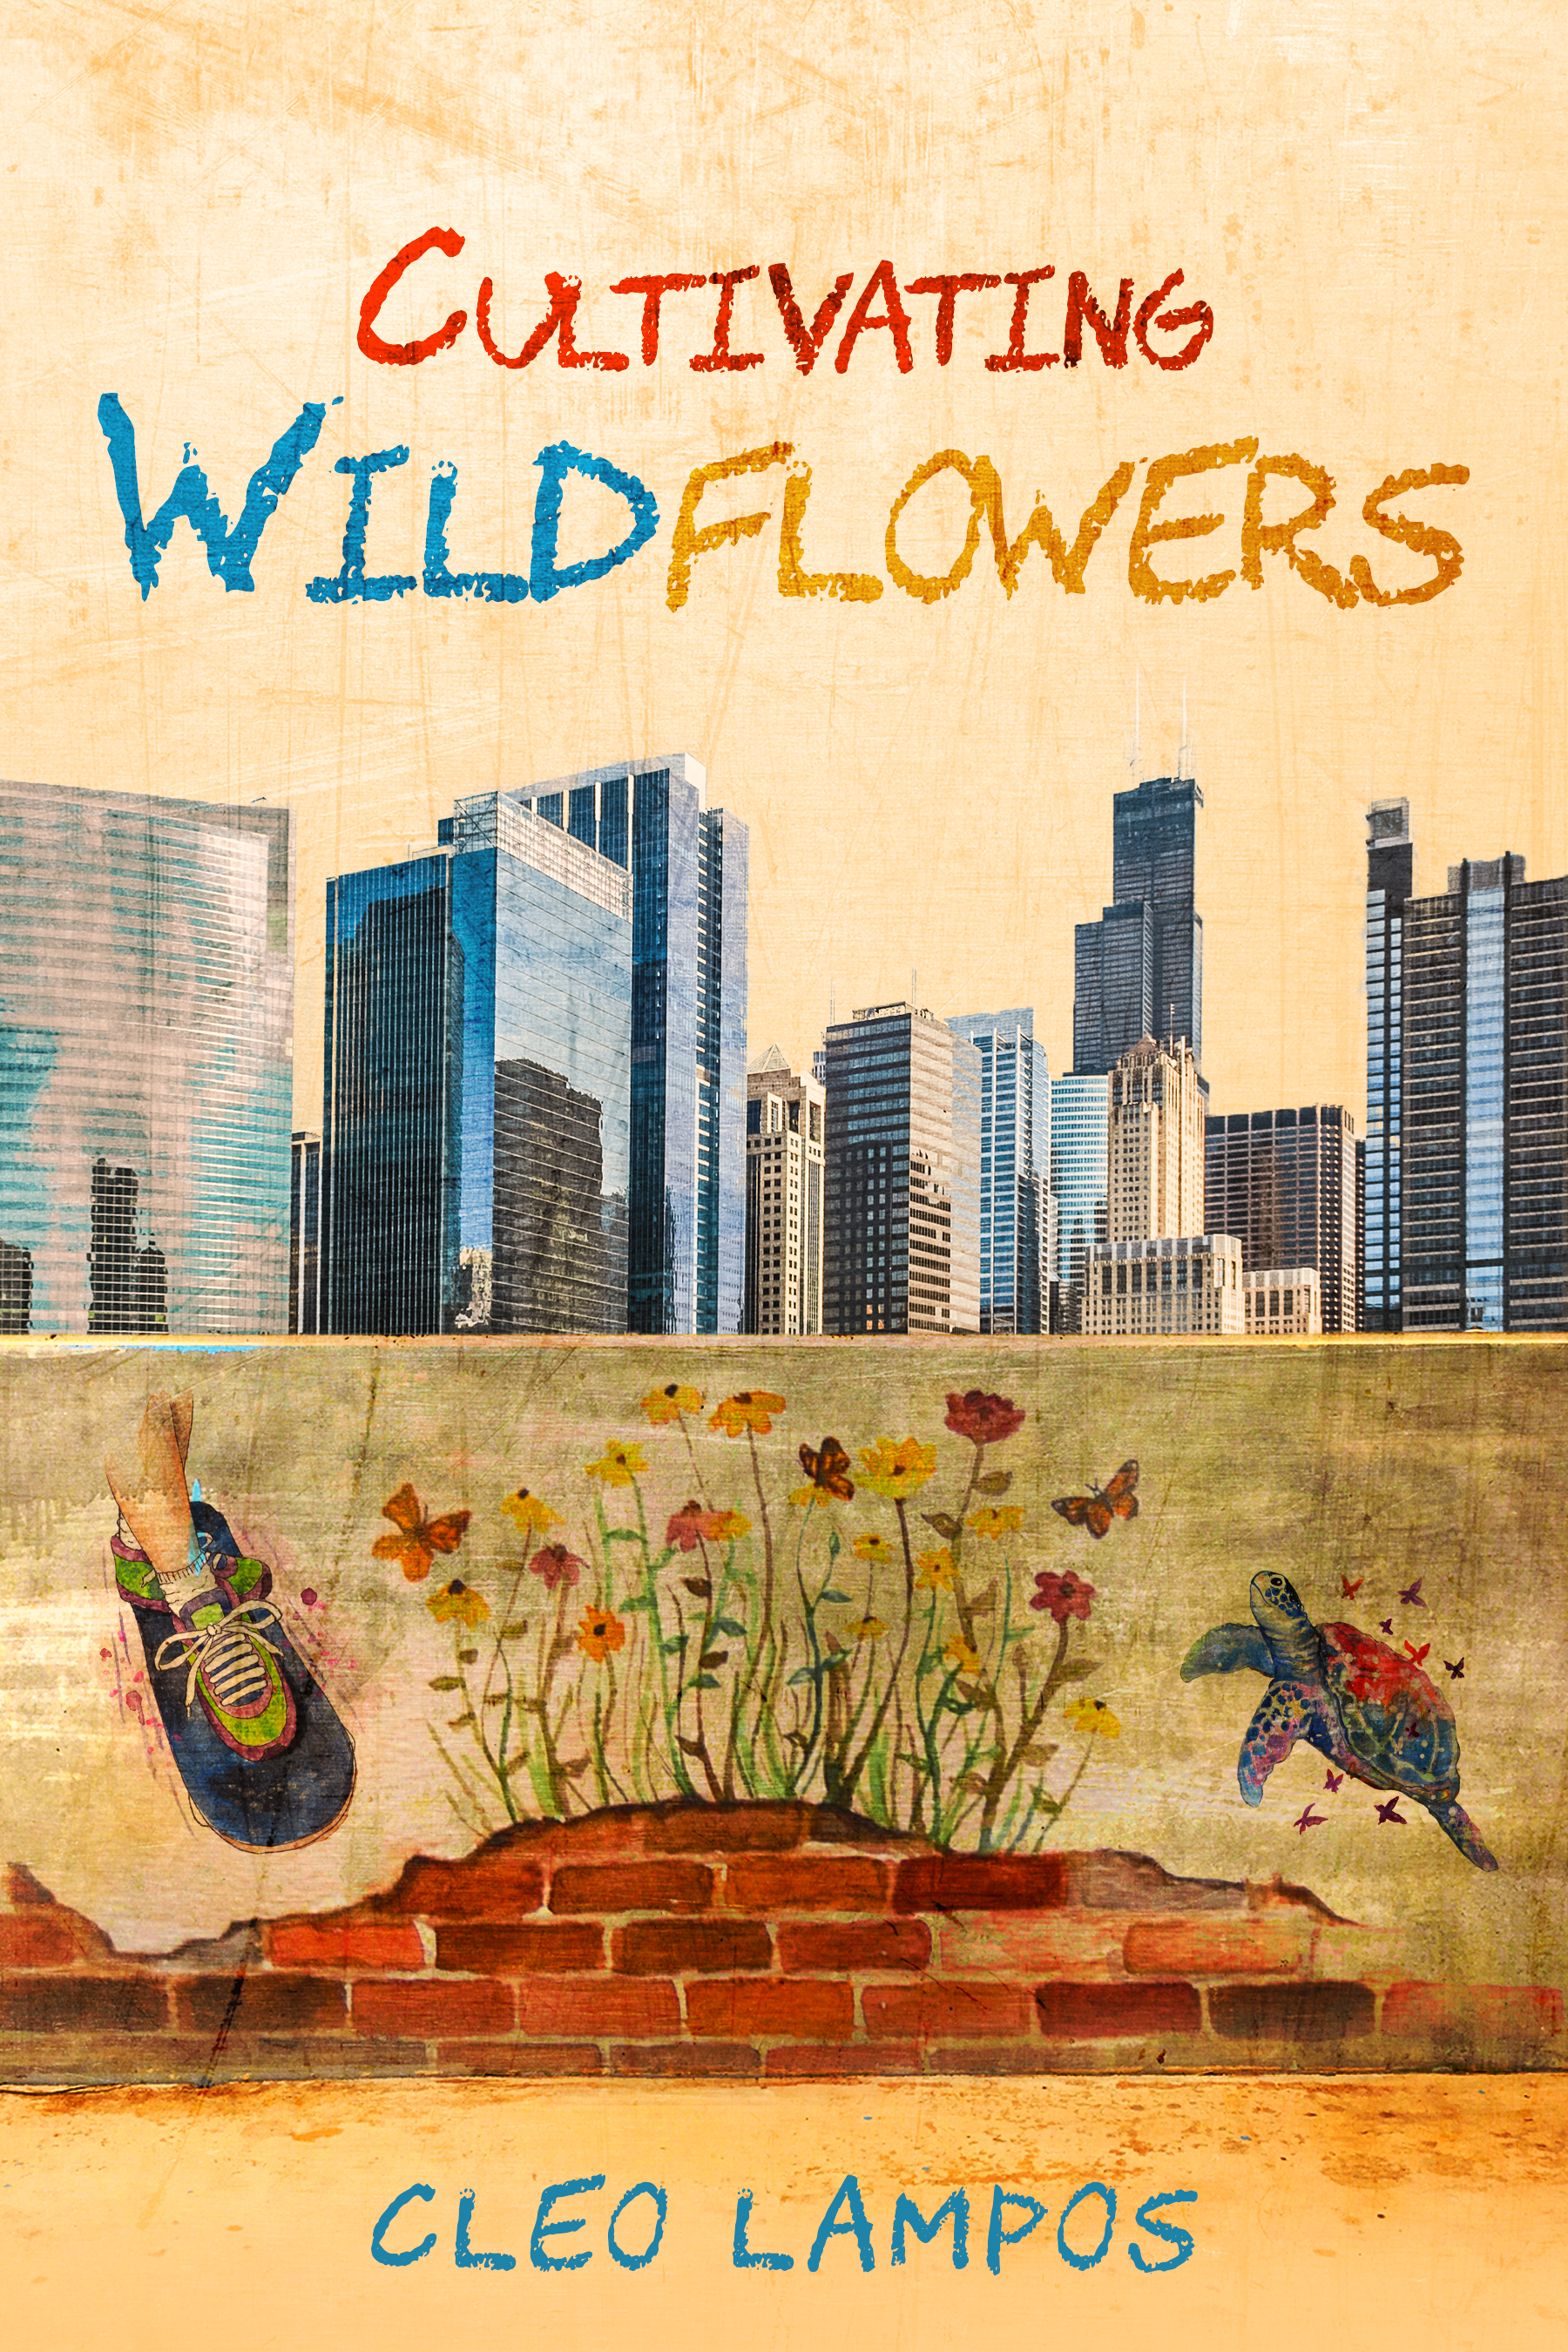 Cultivating Wildflowers